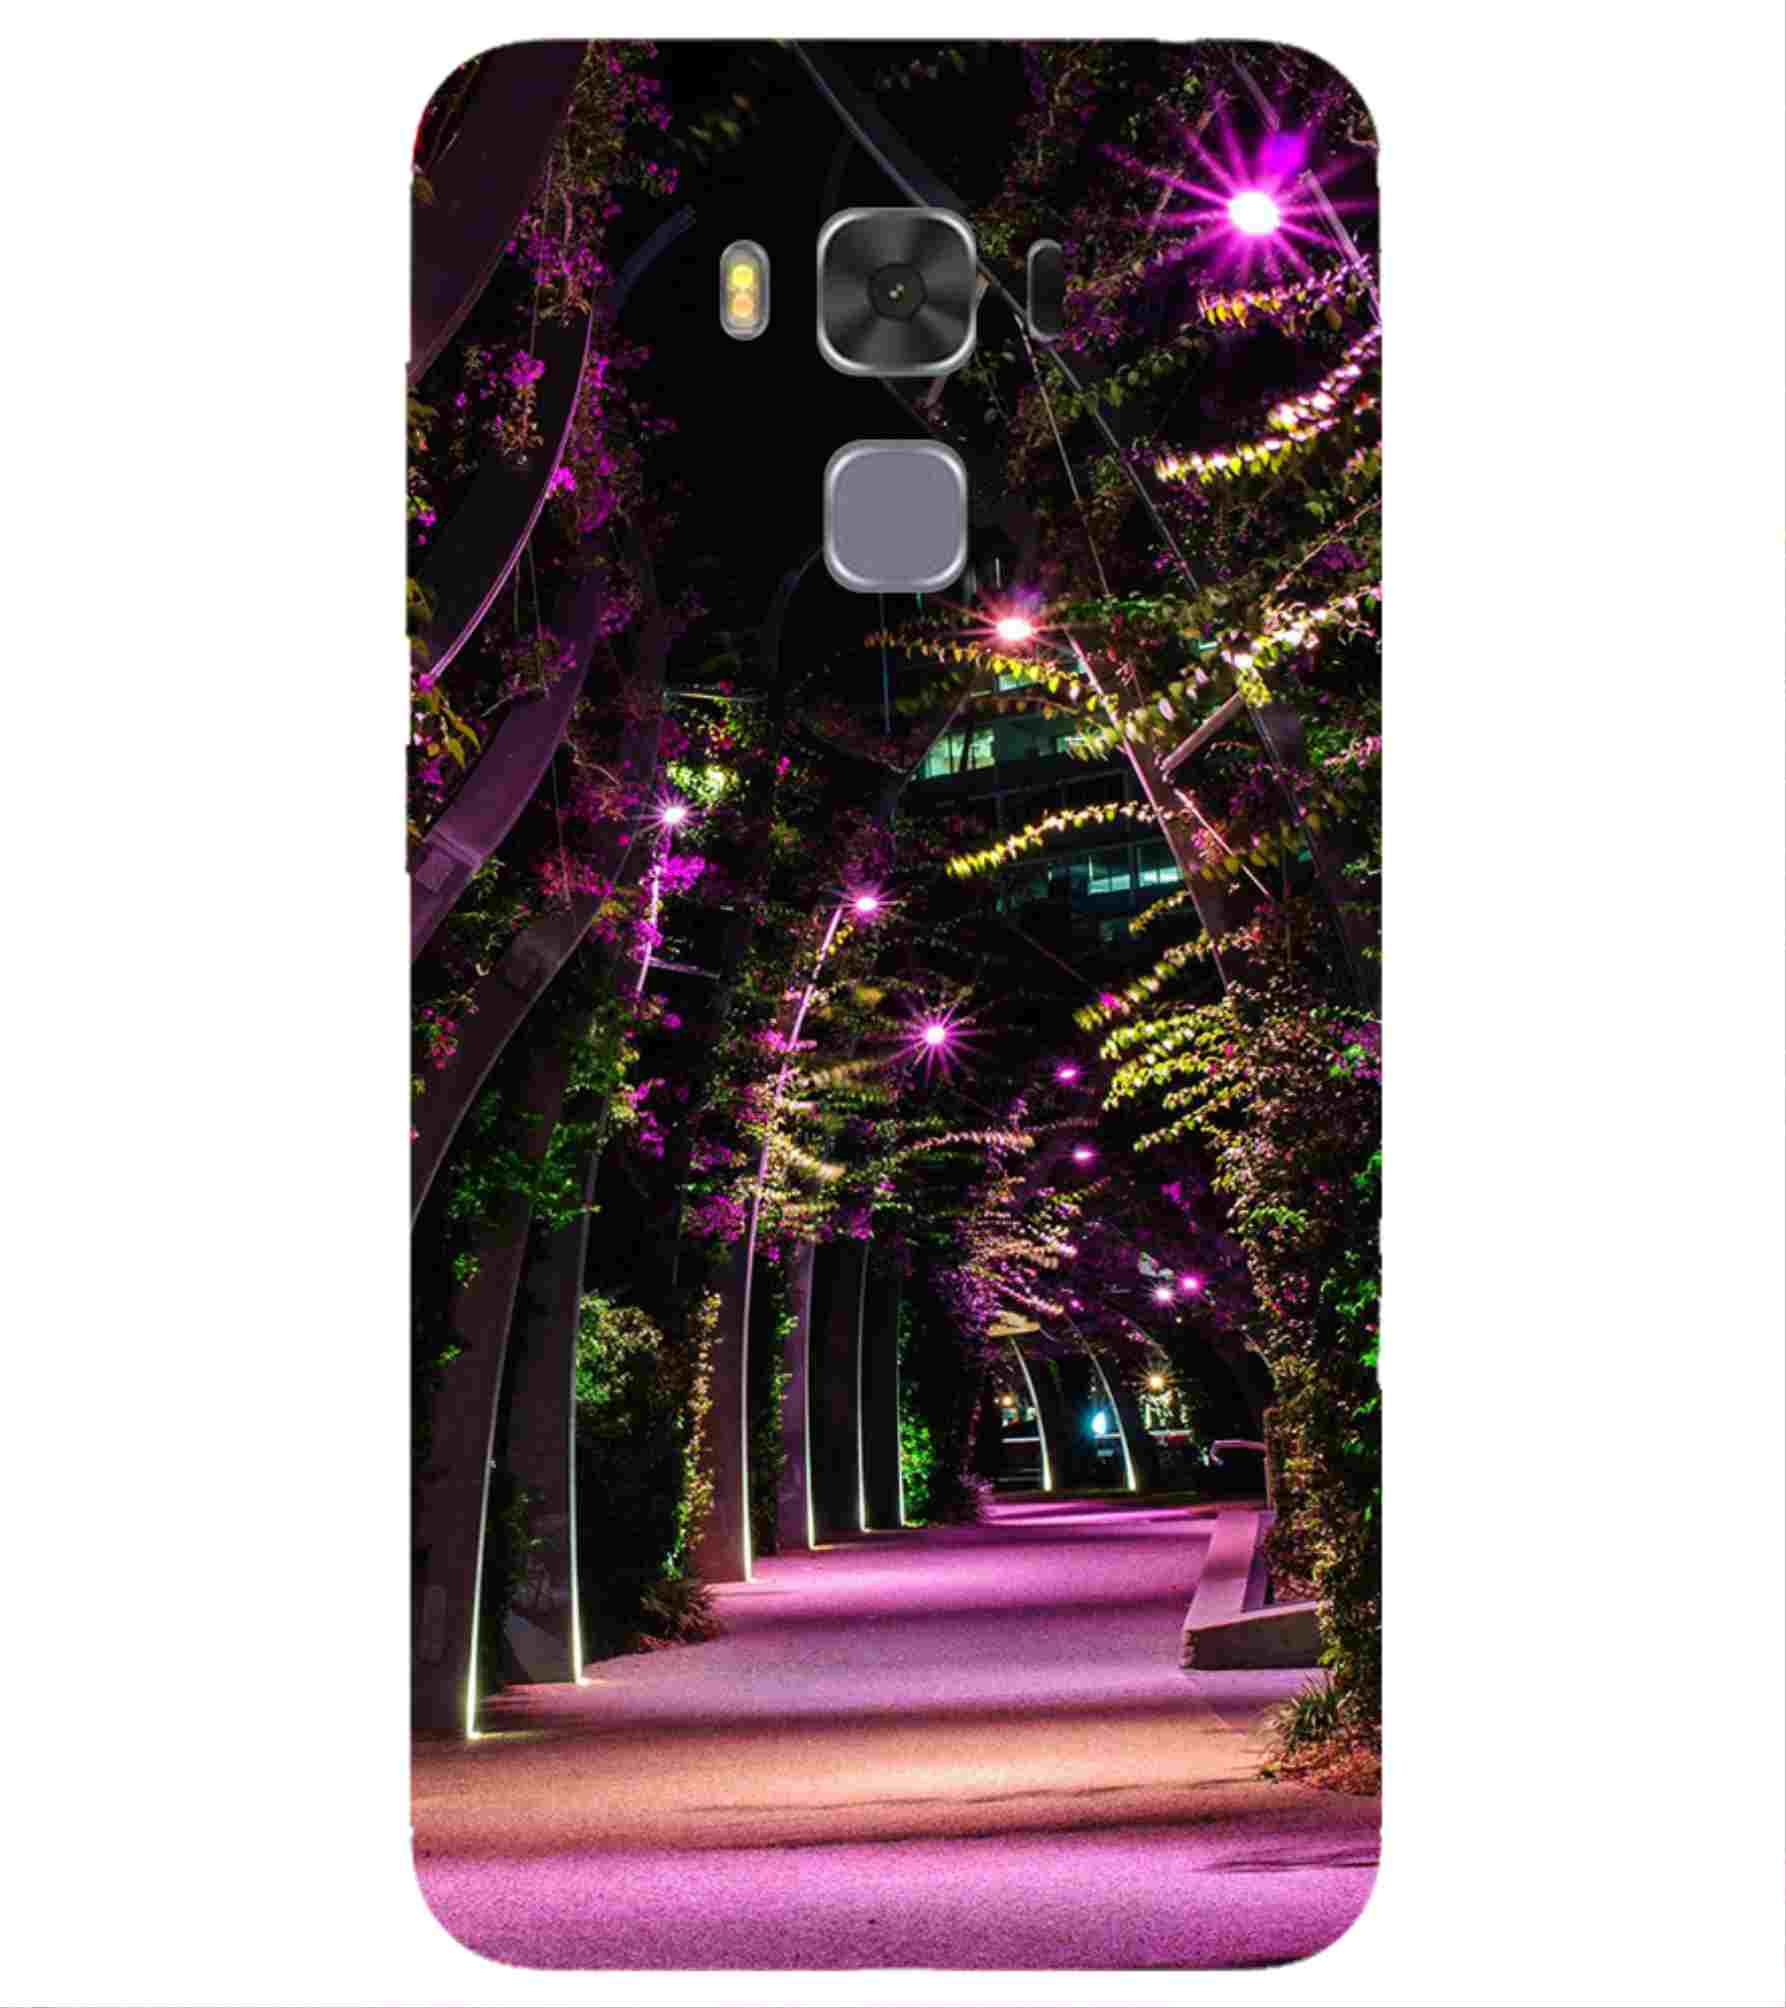 Asus Zenfone 3S Max Printed Back Covers 3D Designer Back Cover for Asus Zenfone 3S Max by EagleHawk   Pattern Quotes Pr